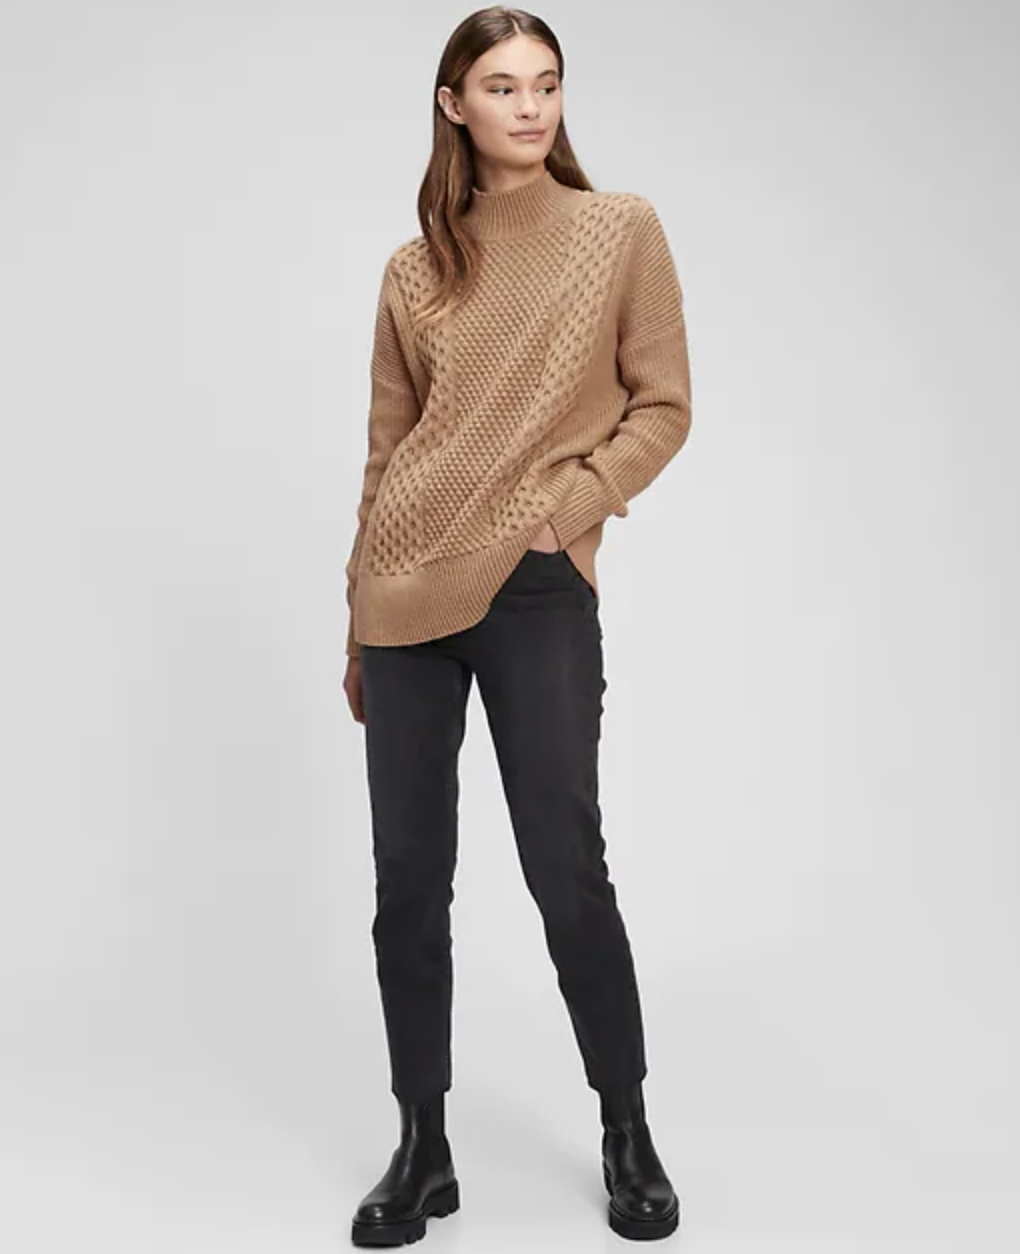 model wearing tan sweater with black pants and boots